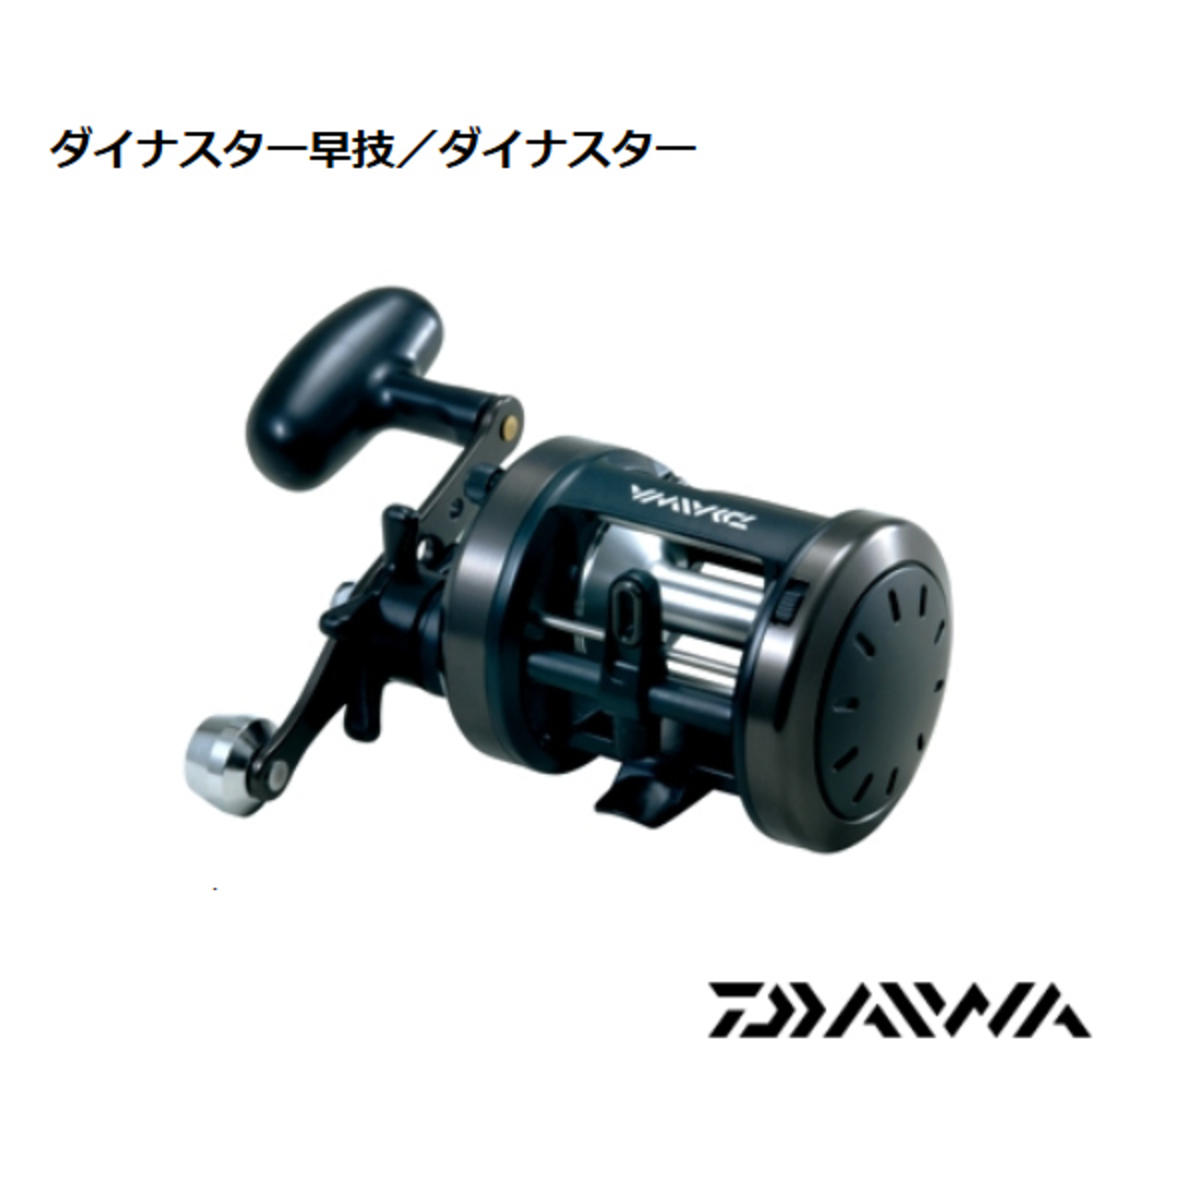 Ex Display Daiwa Dynastar RHW Multiplier Reel D250, JDM REEL